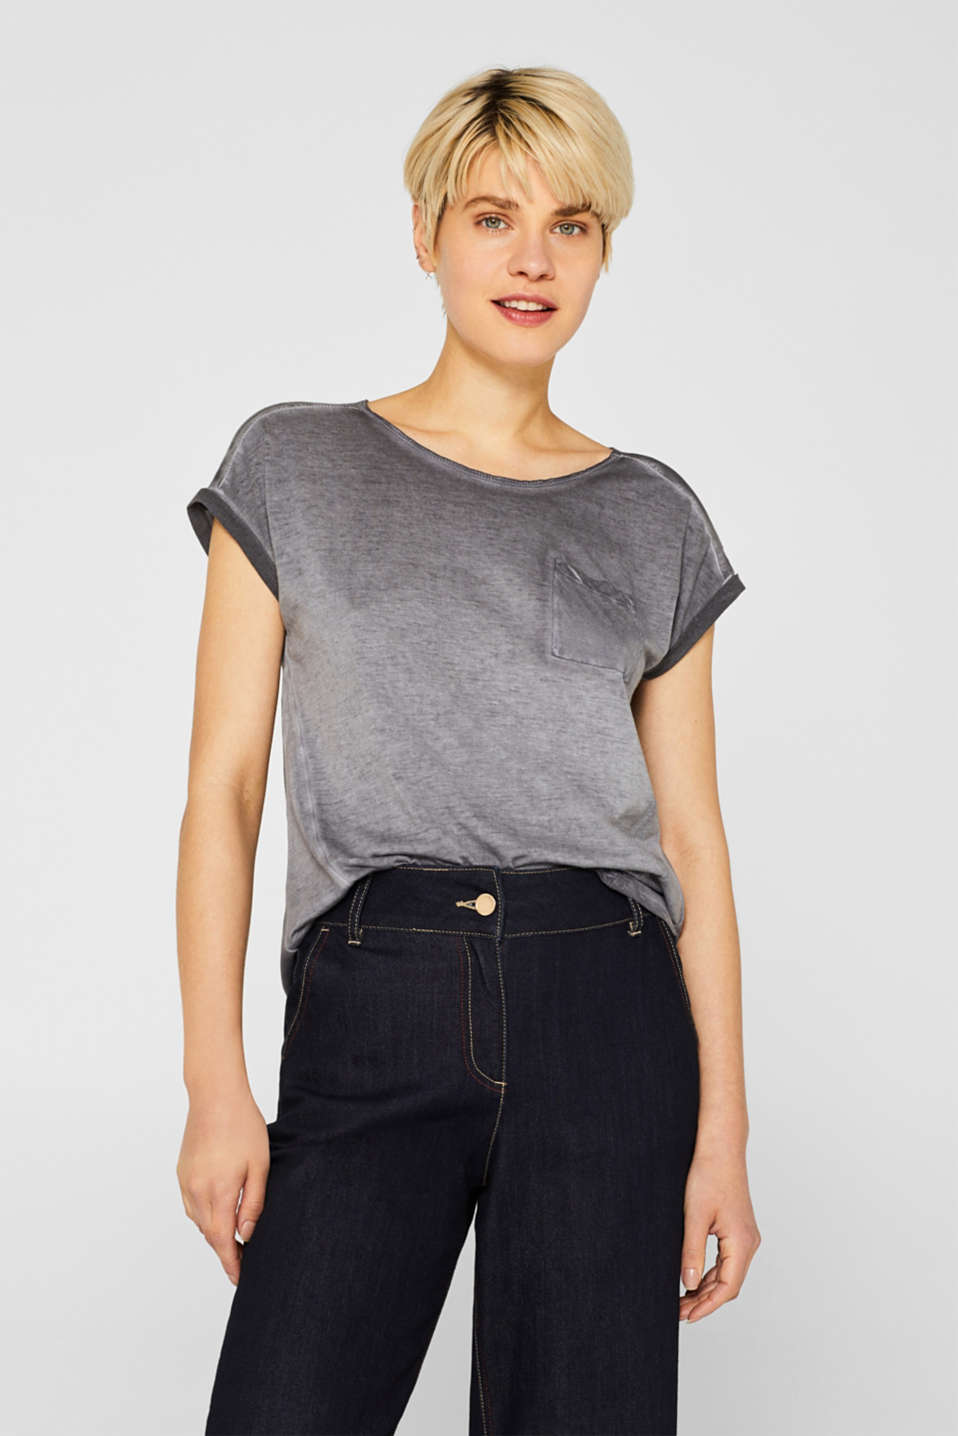 Esprit - T-shirt in blended fabric with a breast pocket